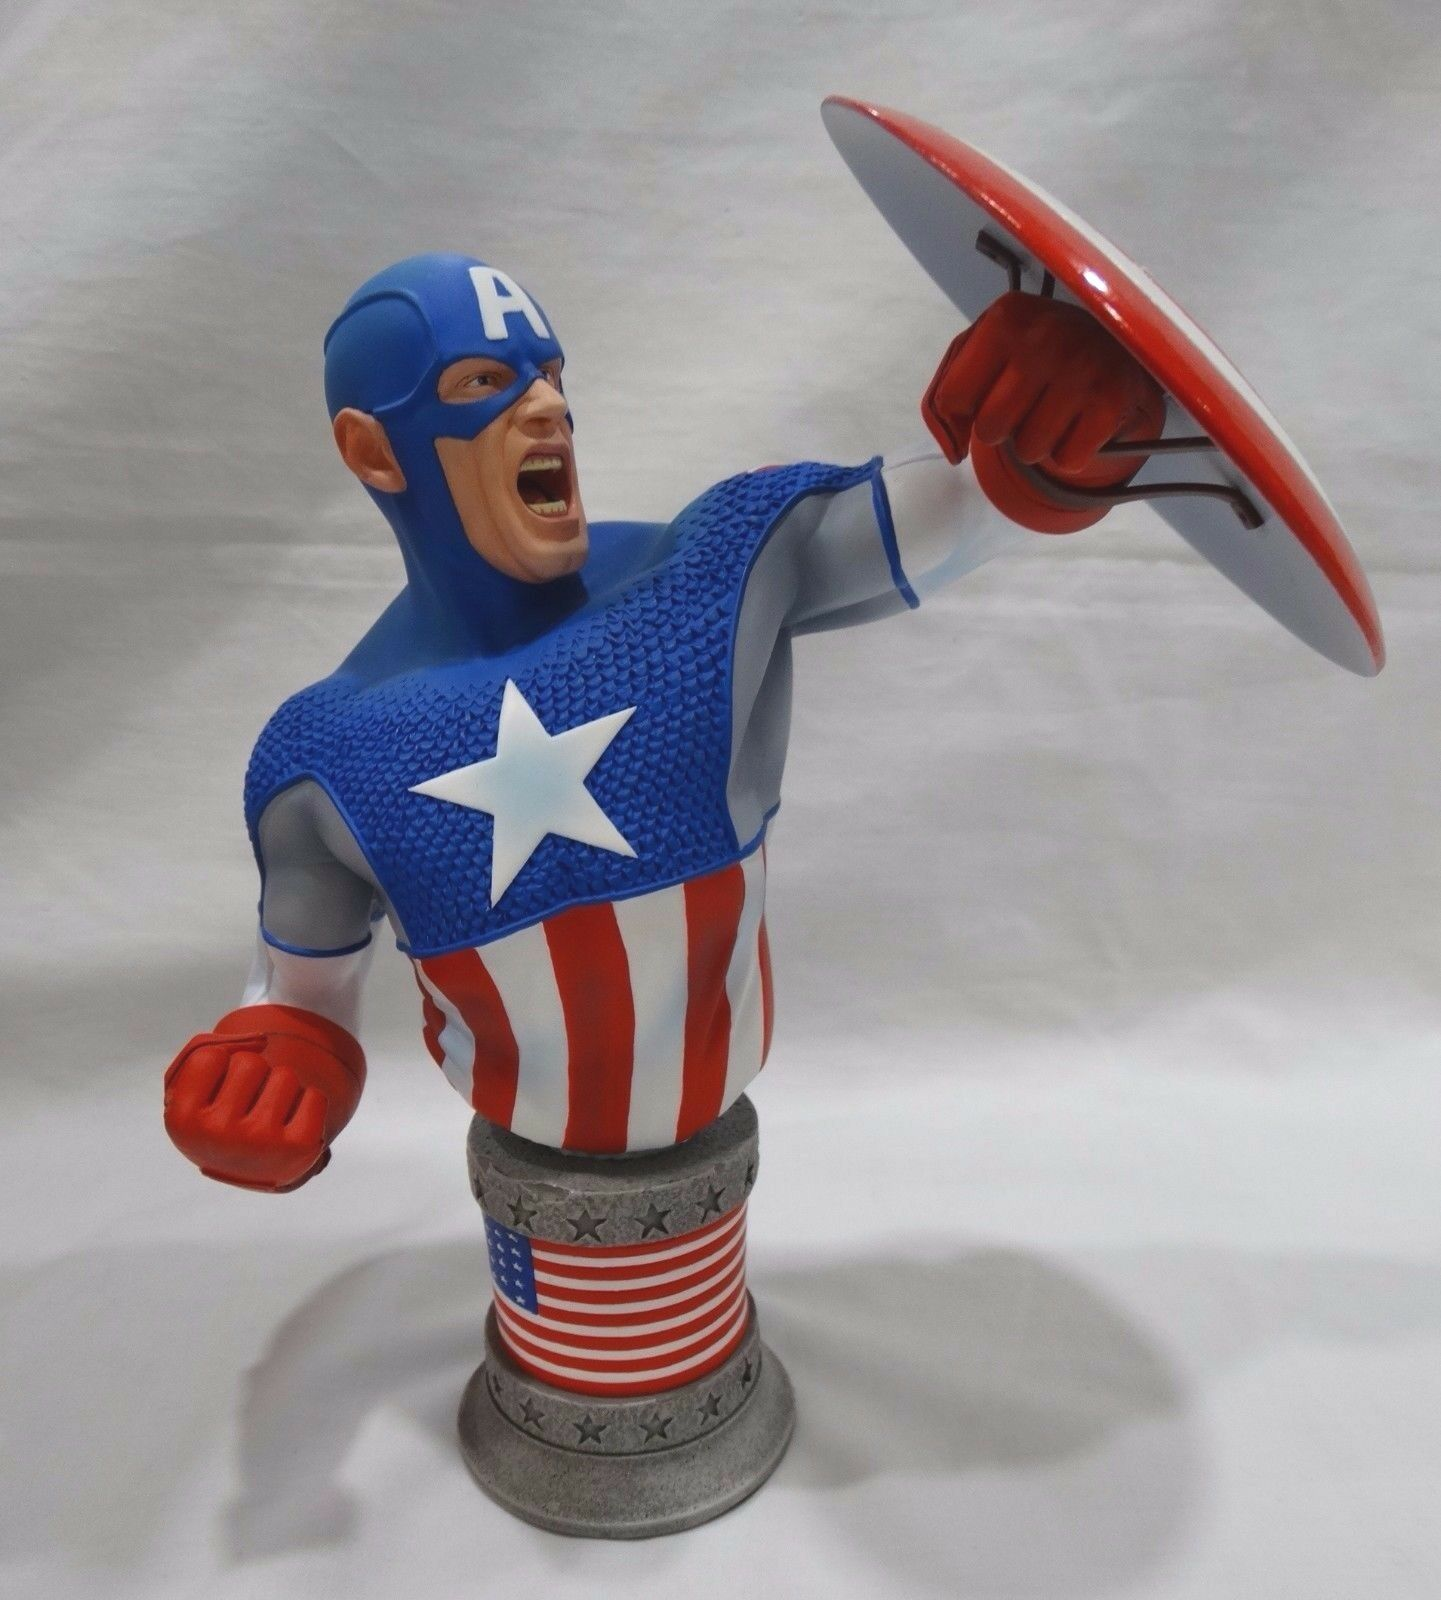 Captain America Ultimate Bust Over 7 Inches Tall by Marvel Standard Edition NEW